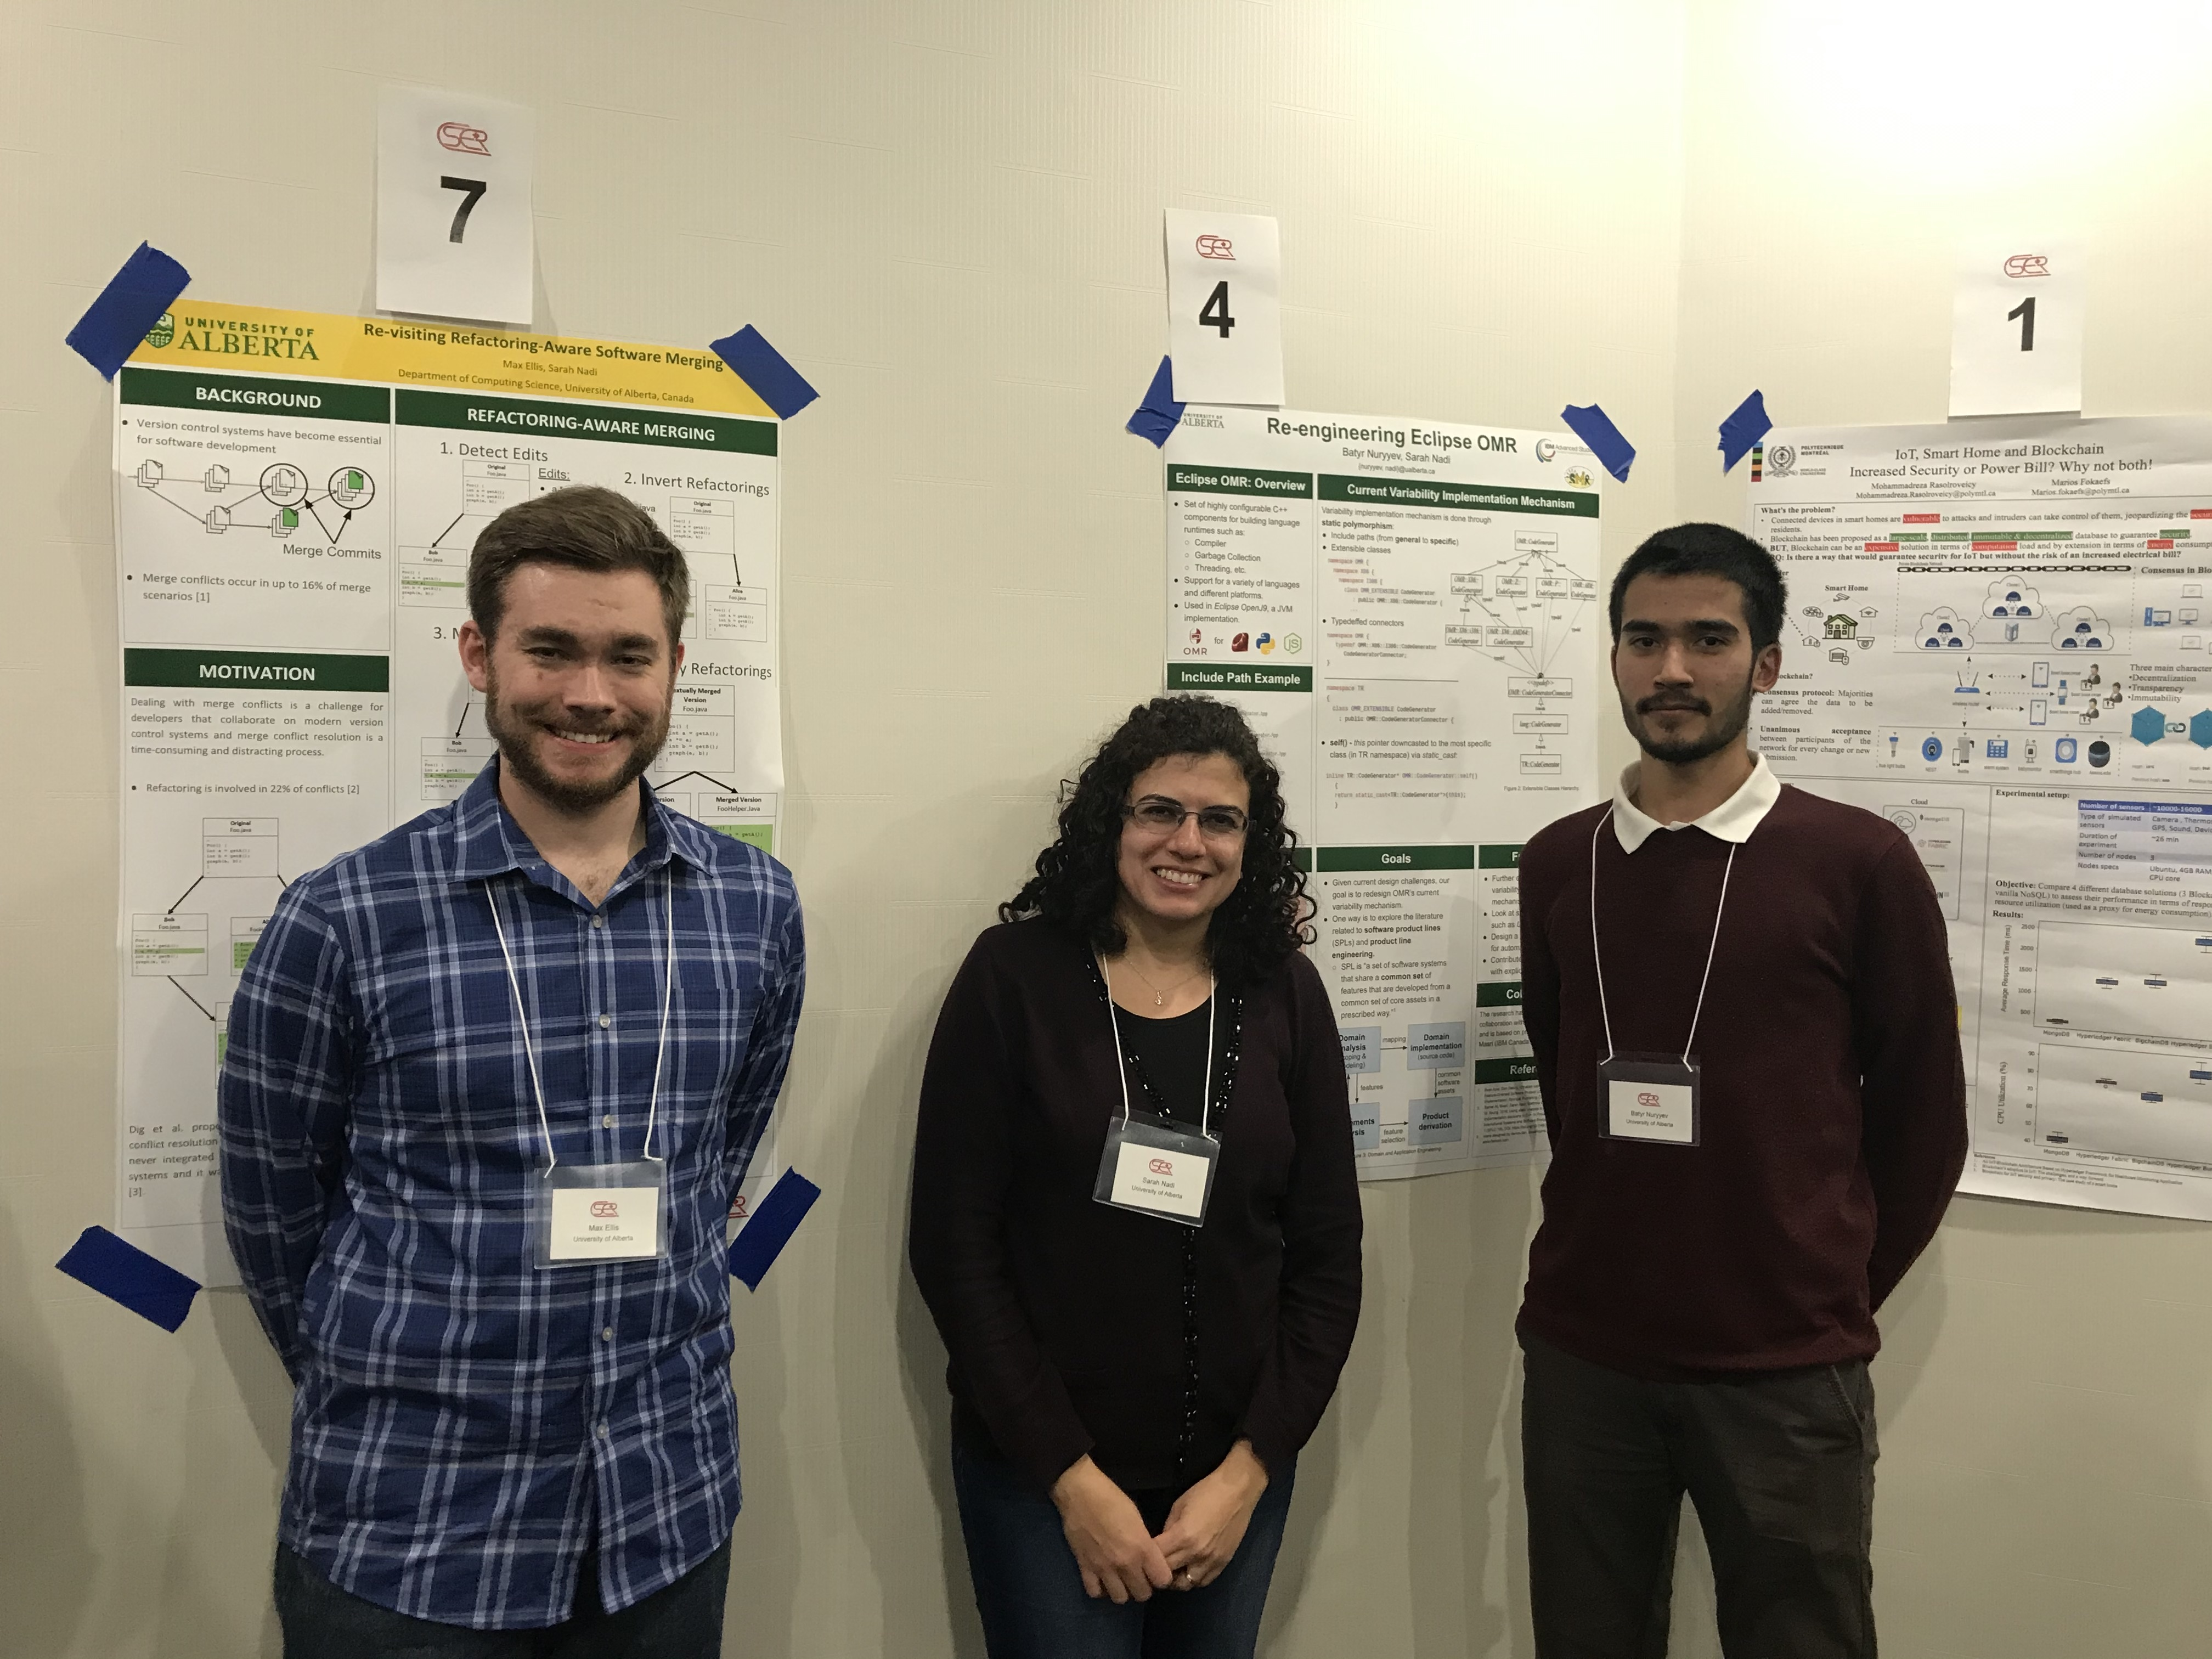 CSER 2019 poster presentations in Markham, ON (Max Ellis and Batyr Nurryev)